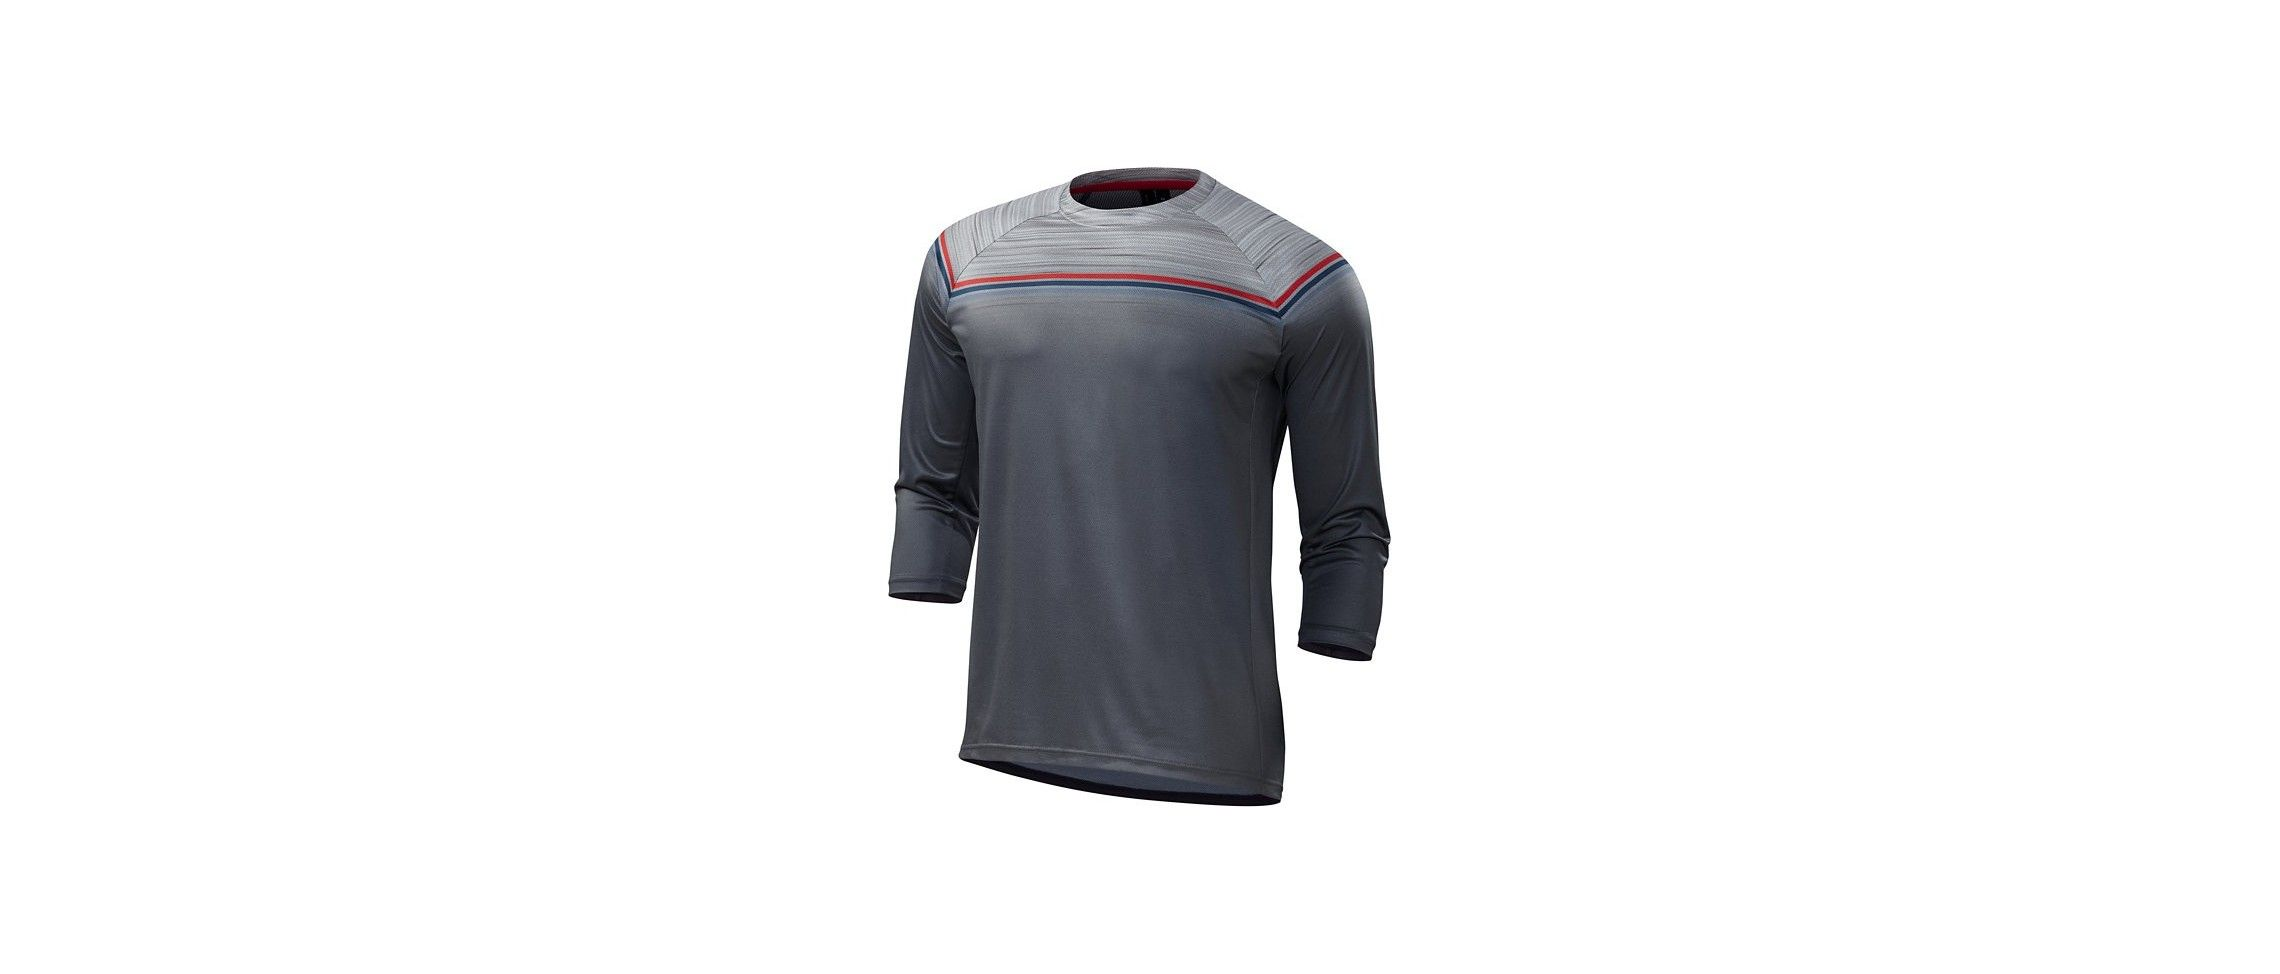 Enduro Comp 3/4 Maillot Specialized Grey/Red 1 IBKBike.es